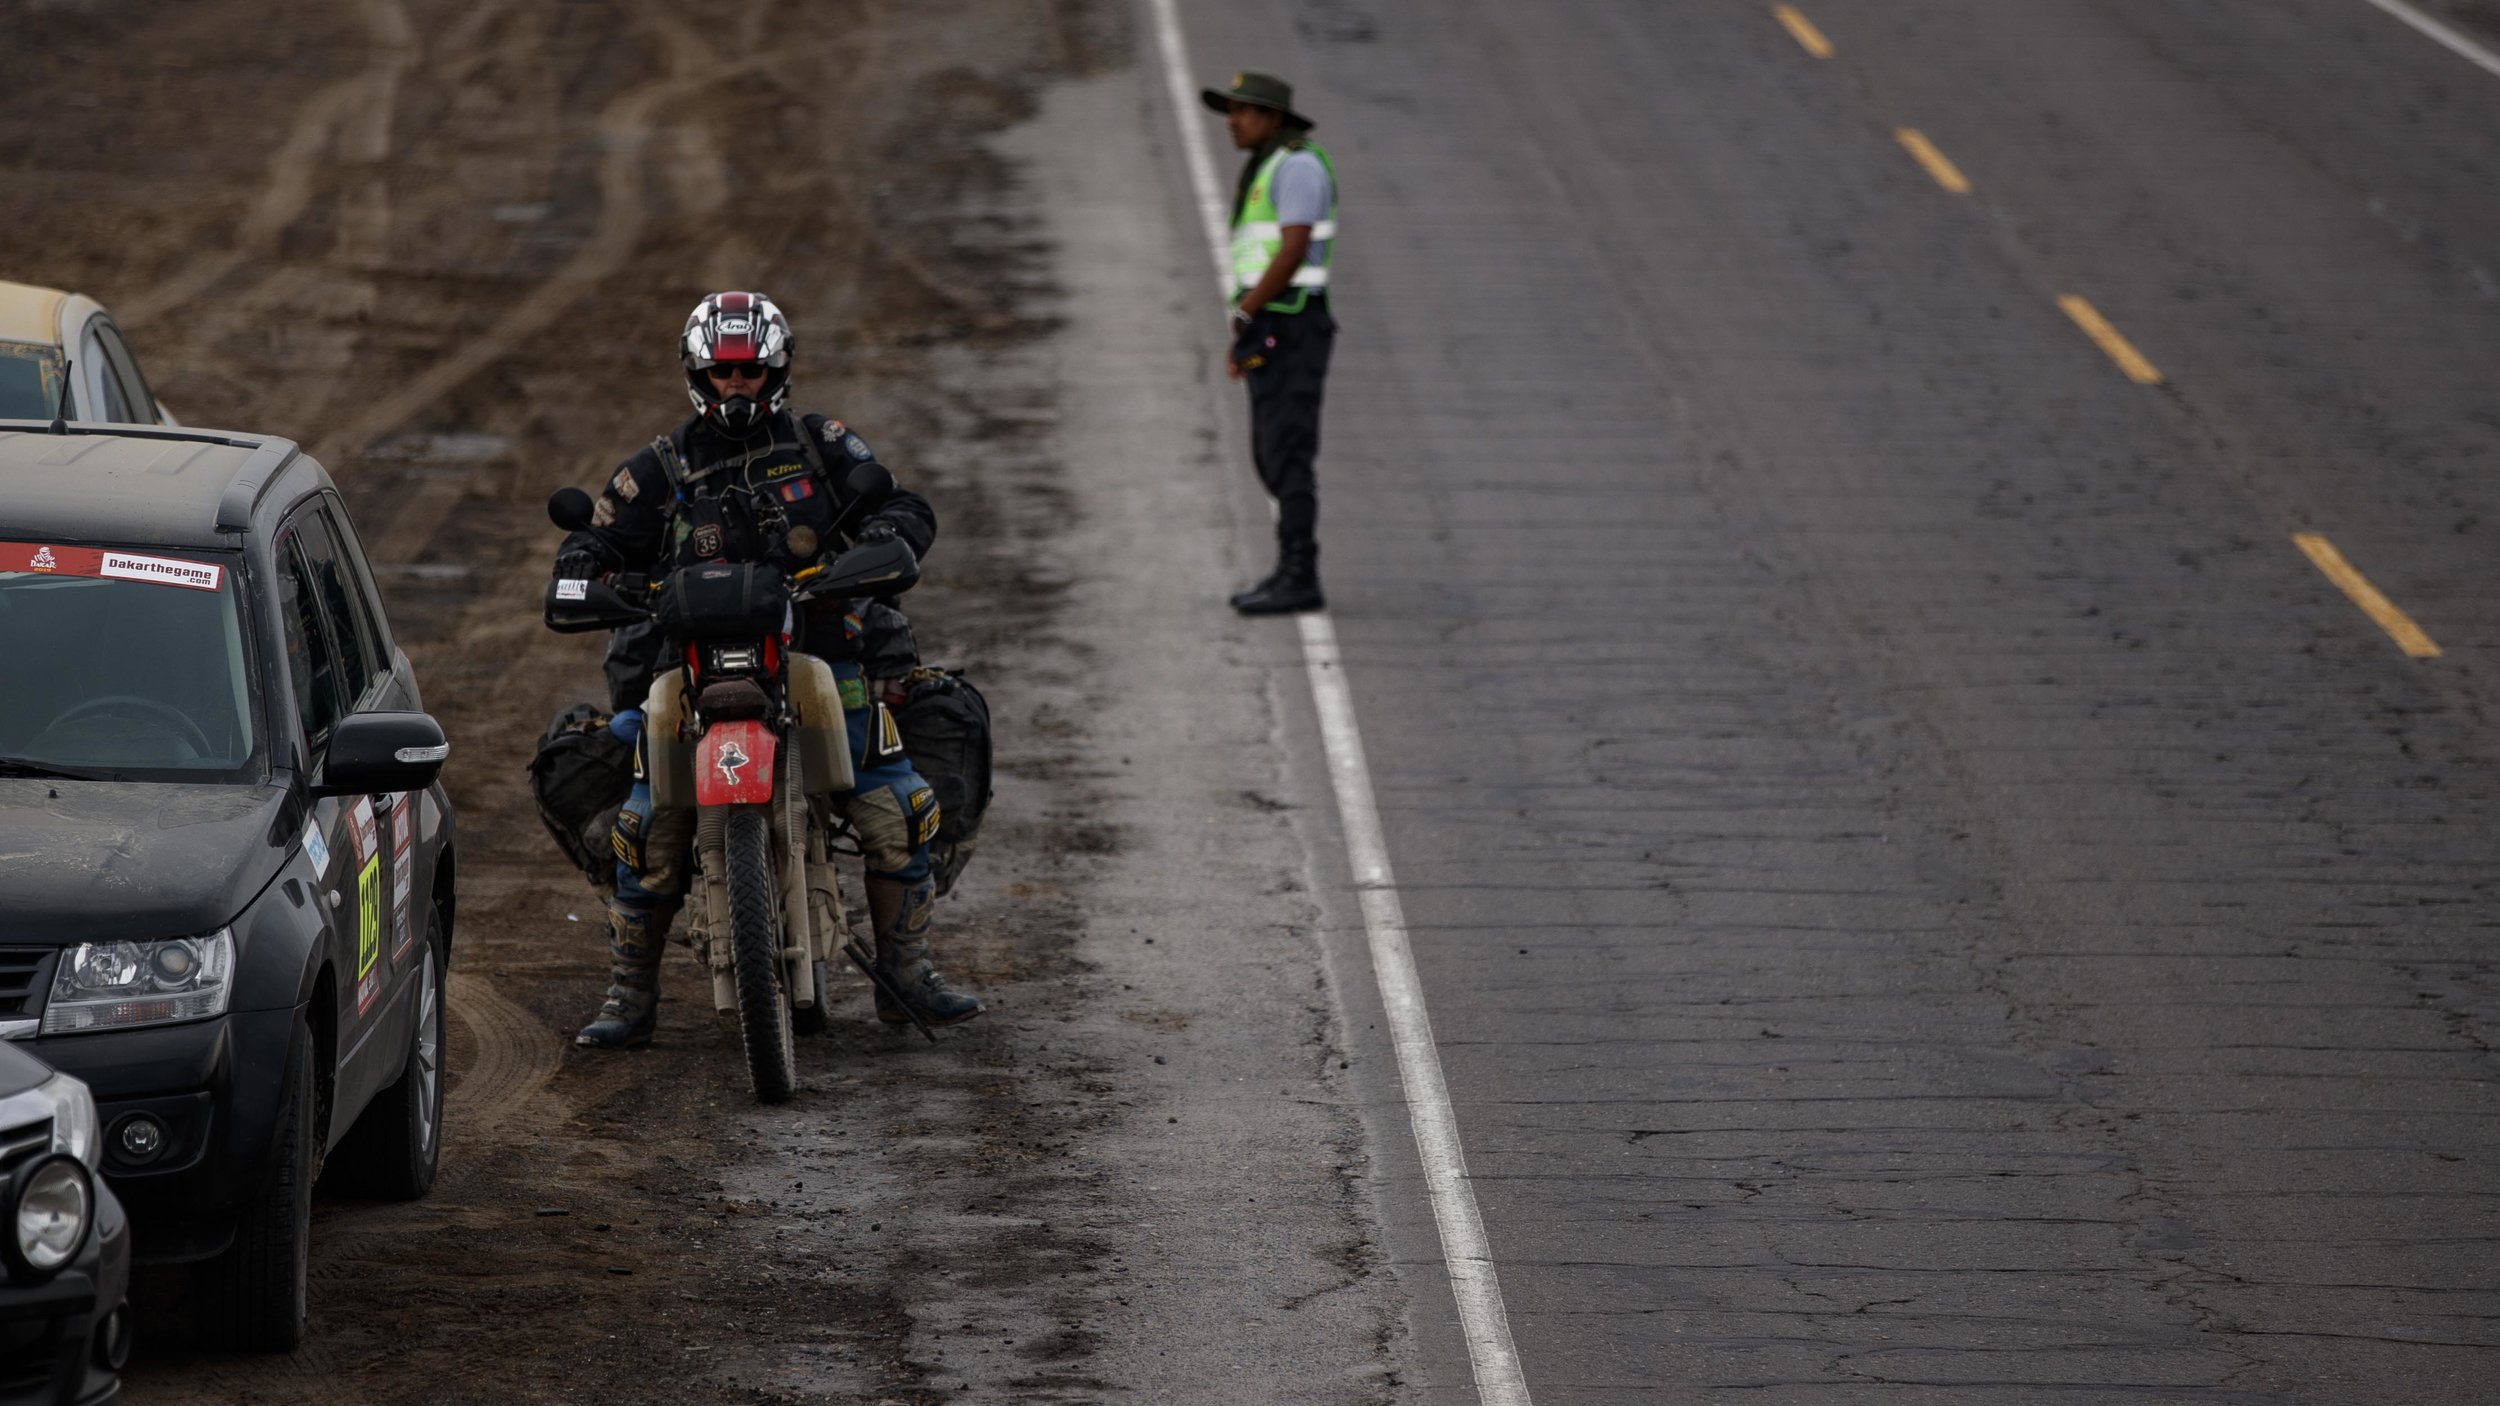 This biker looked like he was ready to solo the entire Dakar Rally with all of the gear he packed on his bike.